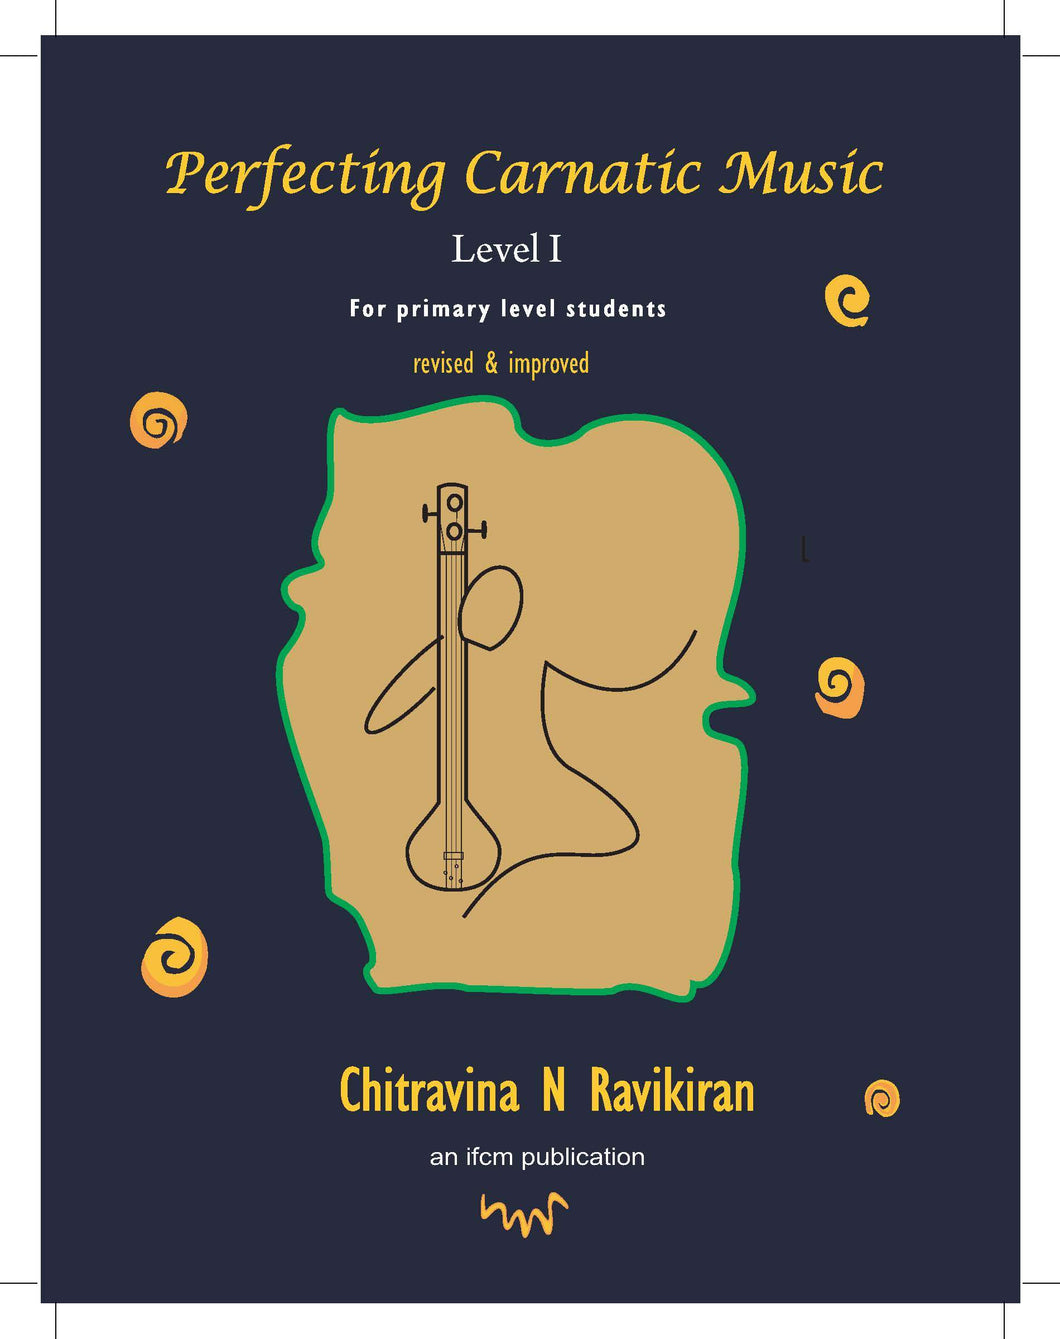 Perfecting Carnatic Music Level I – E book